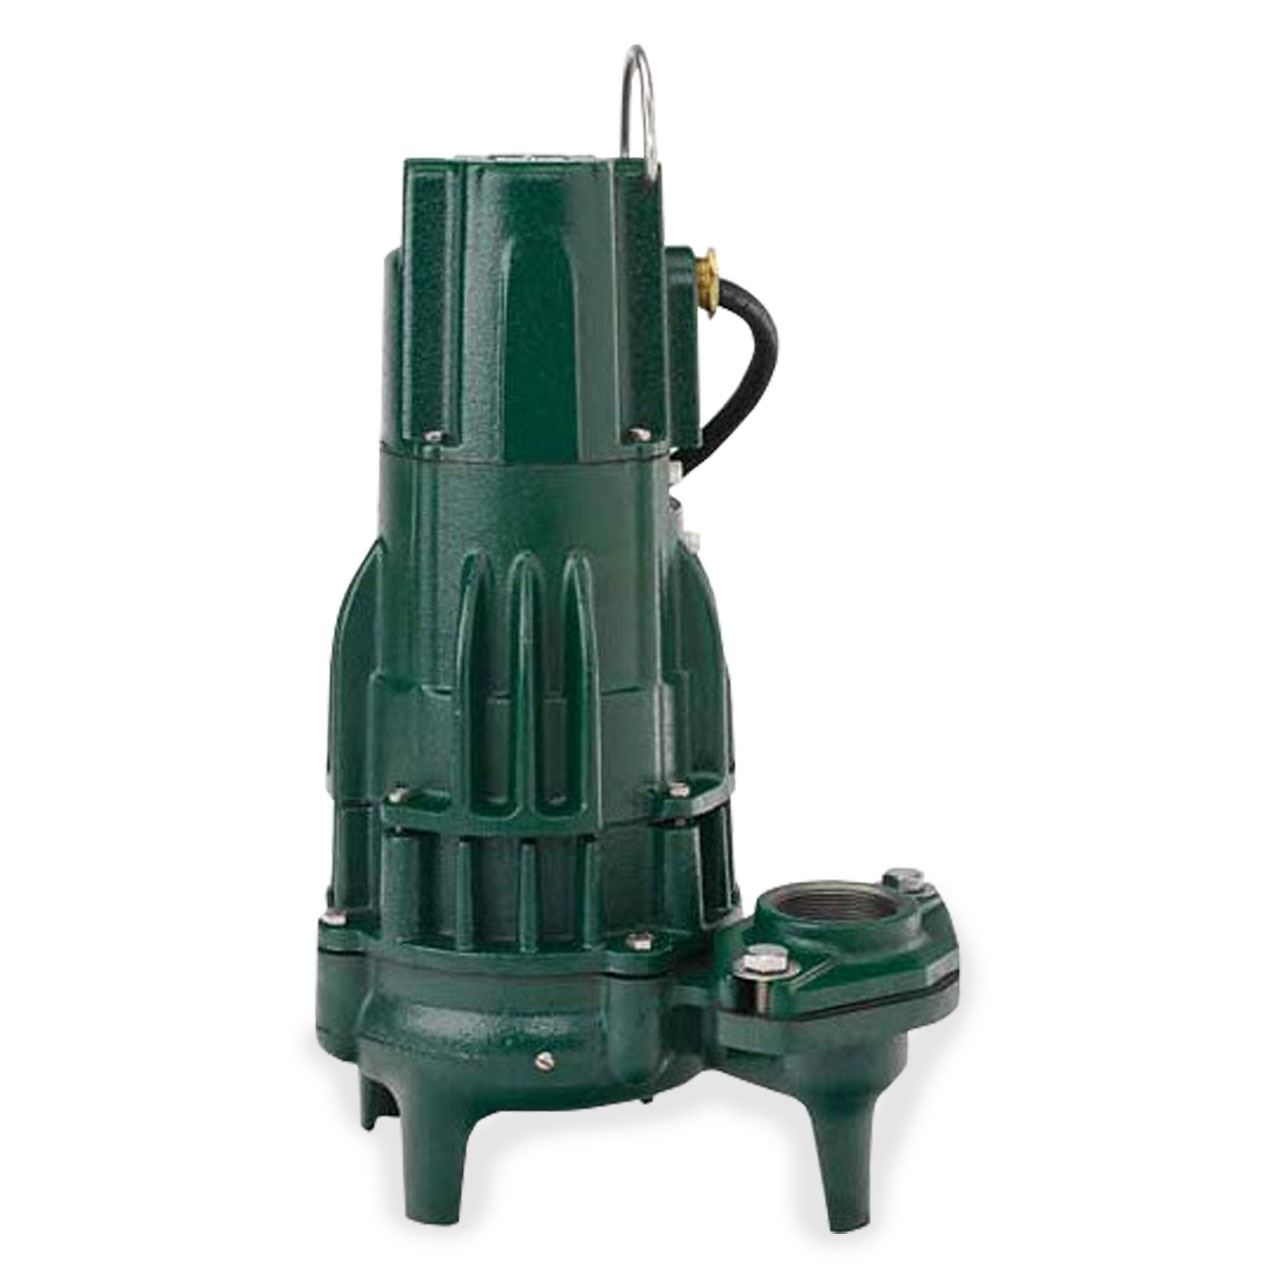 zoeller zoeller 295 0004 model e295 high head sewage dewatering sewer pump system zoeller submersible pump zoeller submersible pump wiring diagram  [ 1280 x 1280 Pixel ]